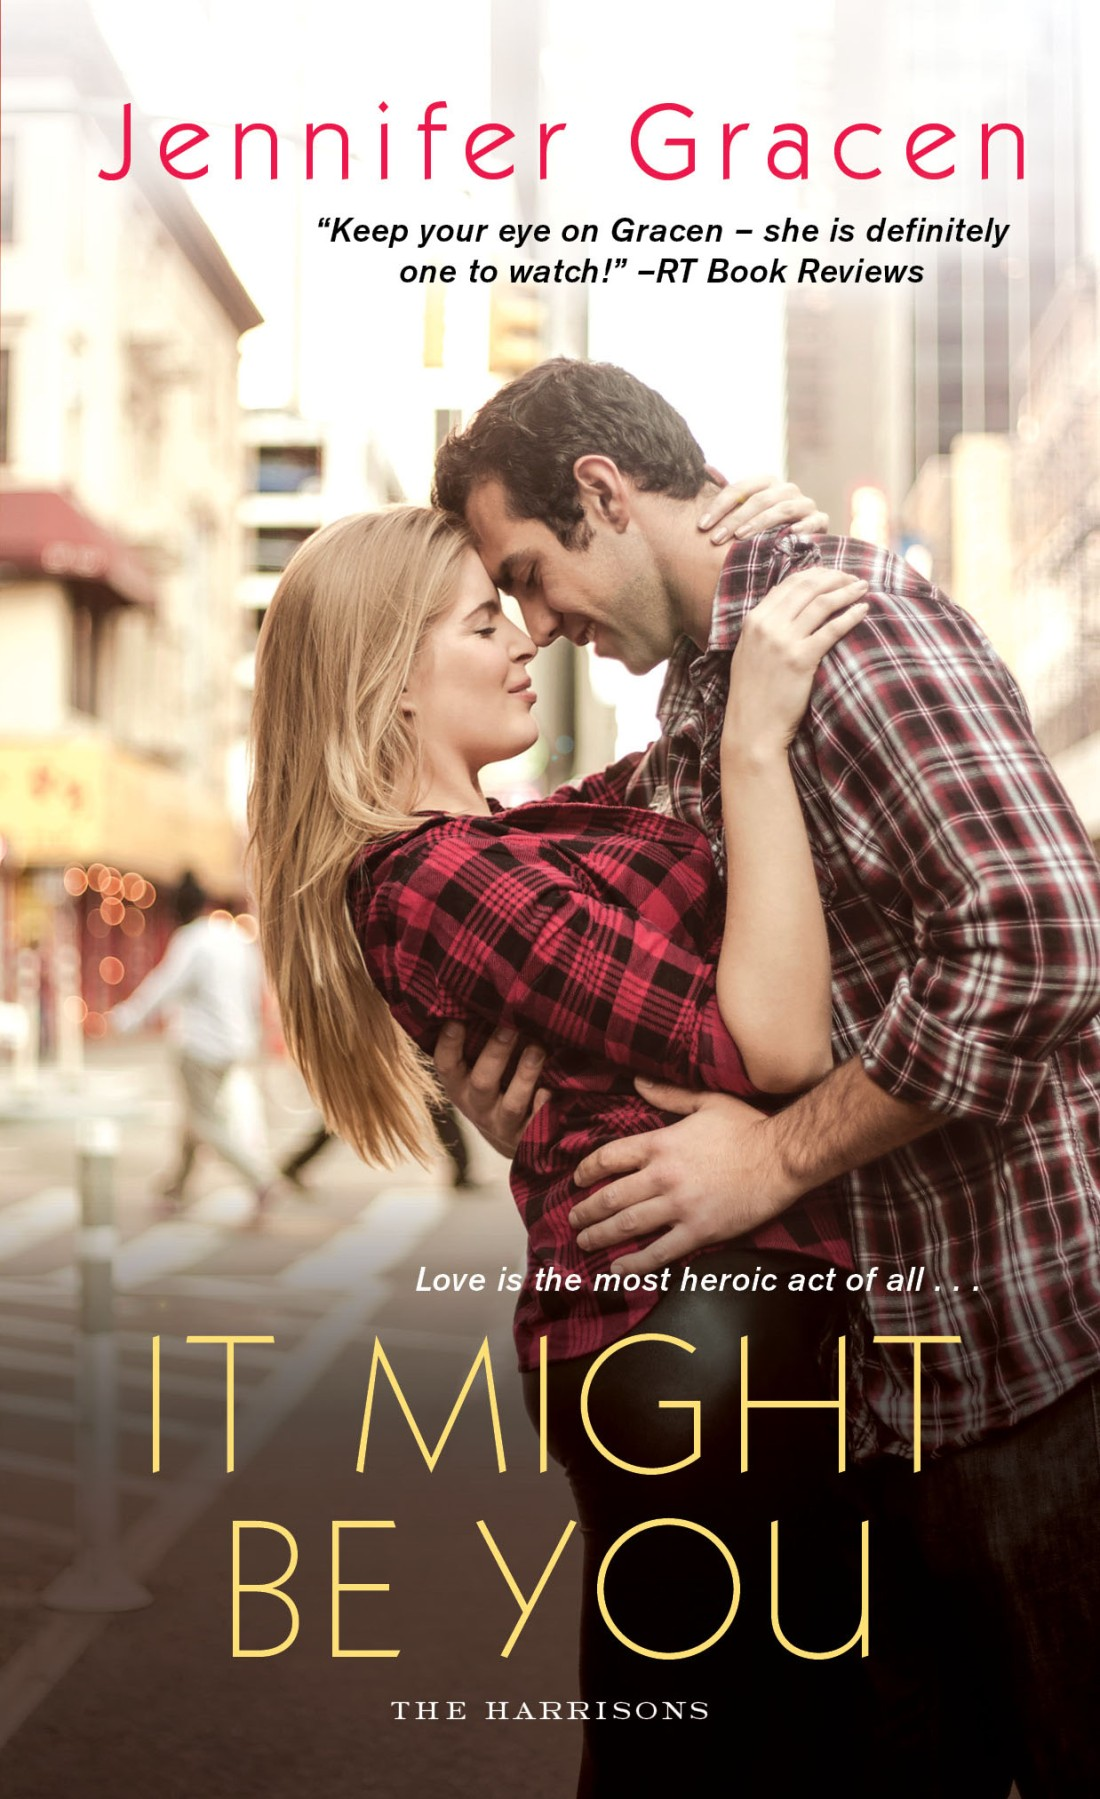 IT MIGHT BE YOU cover hi res